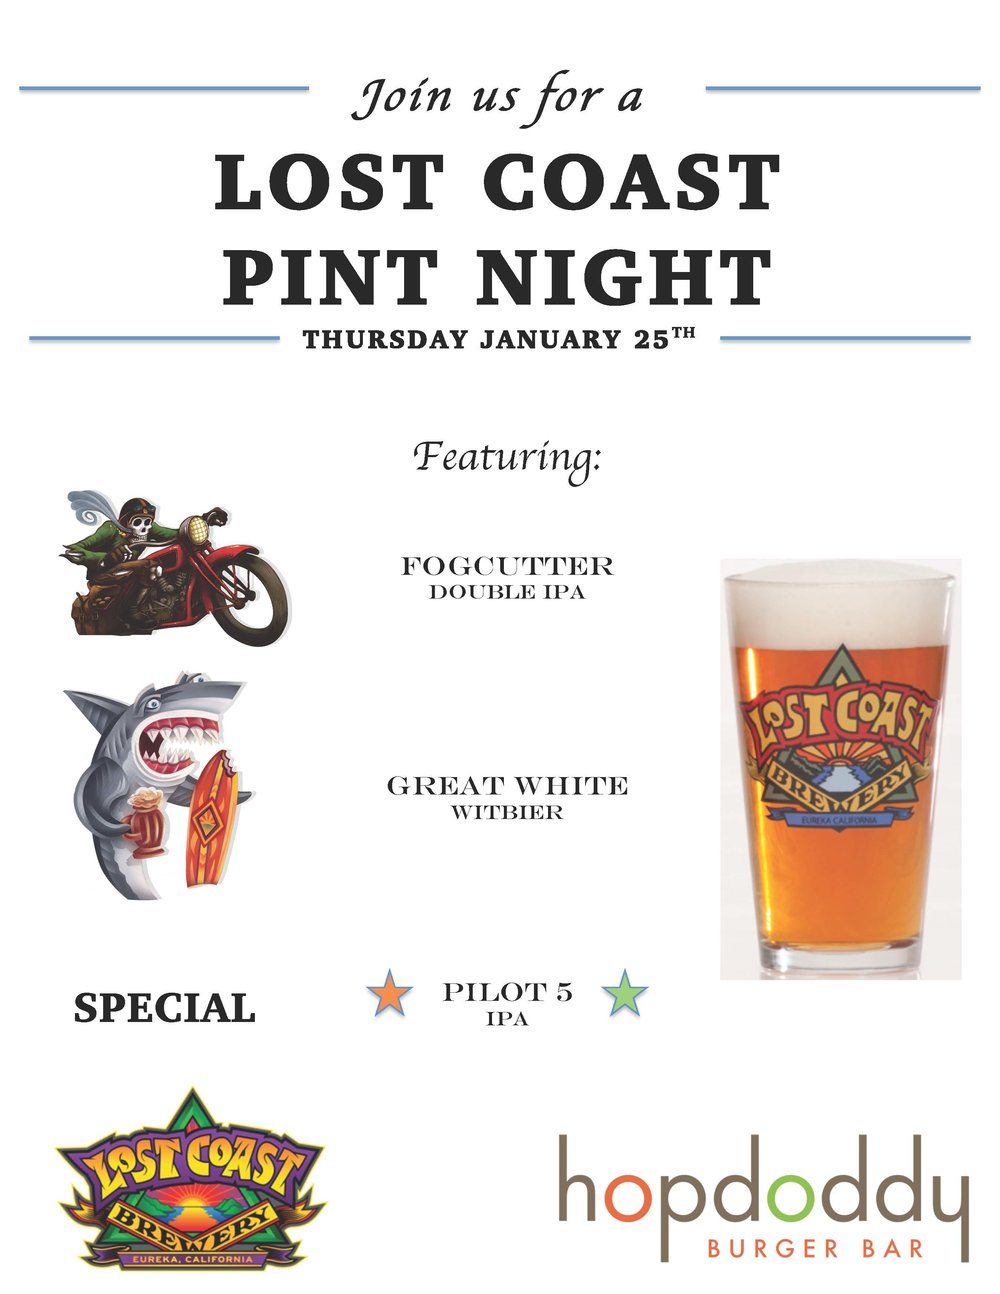 Lost Coast Pint Night Poster.jpg